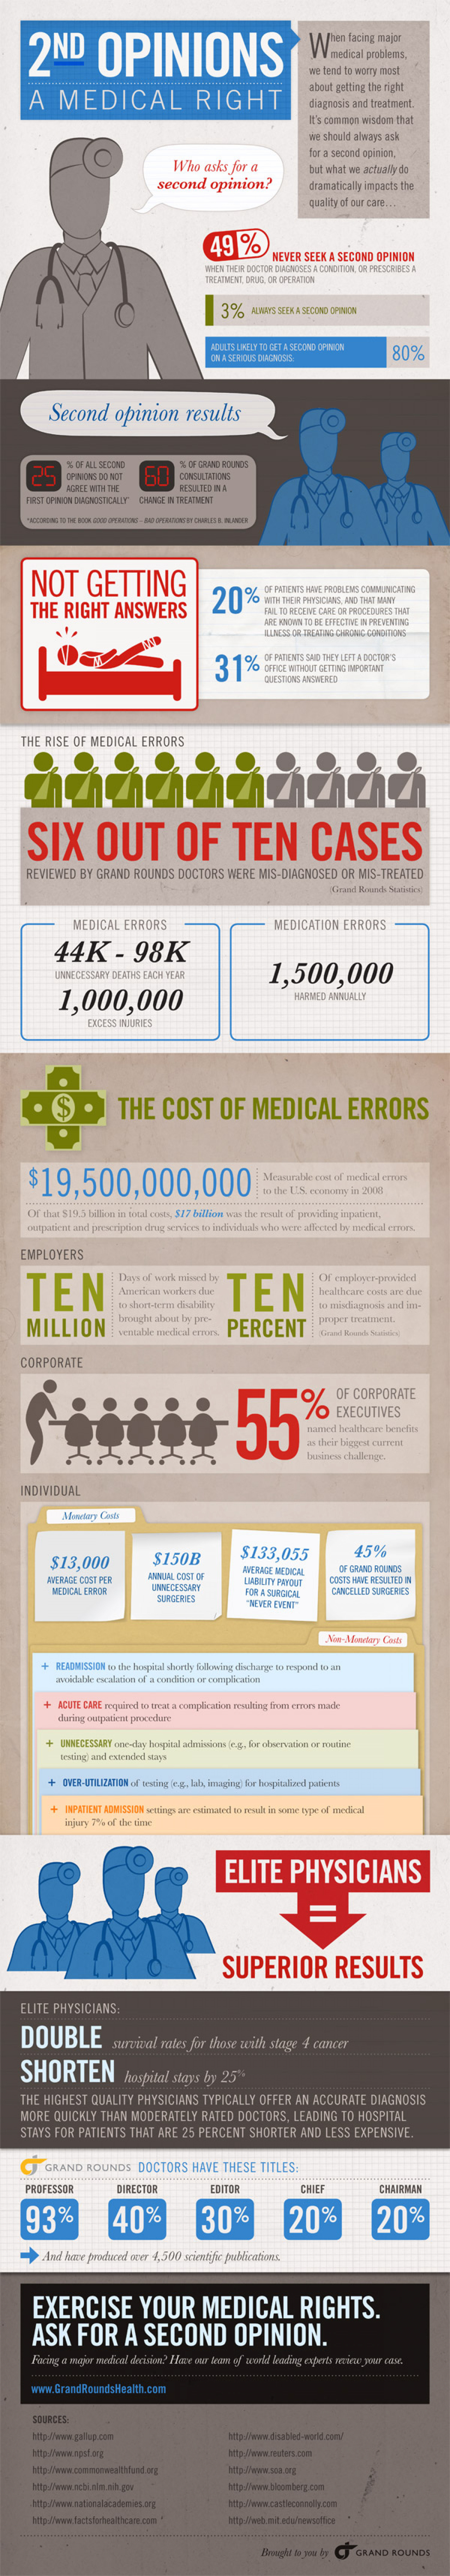 Second Opinions, A Medical Right Infographic